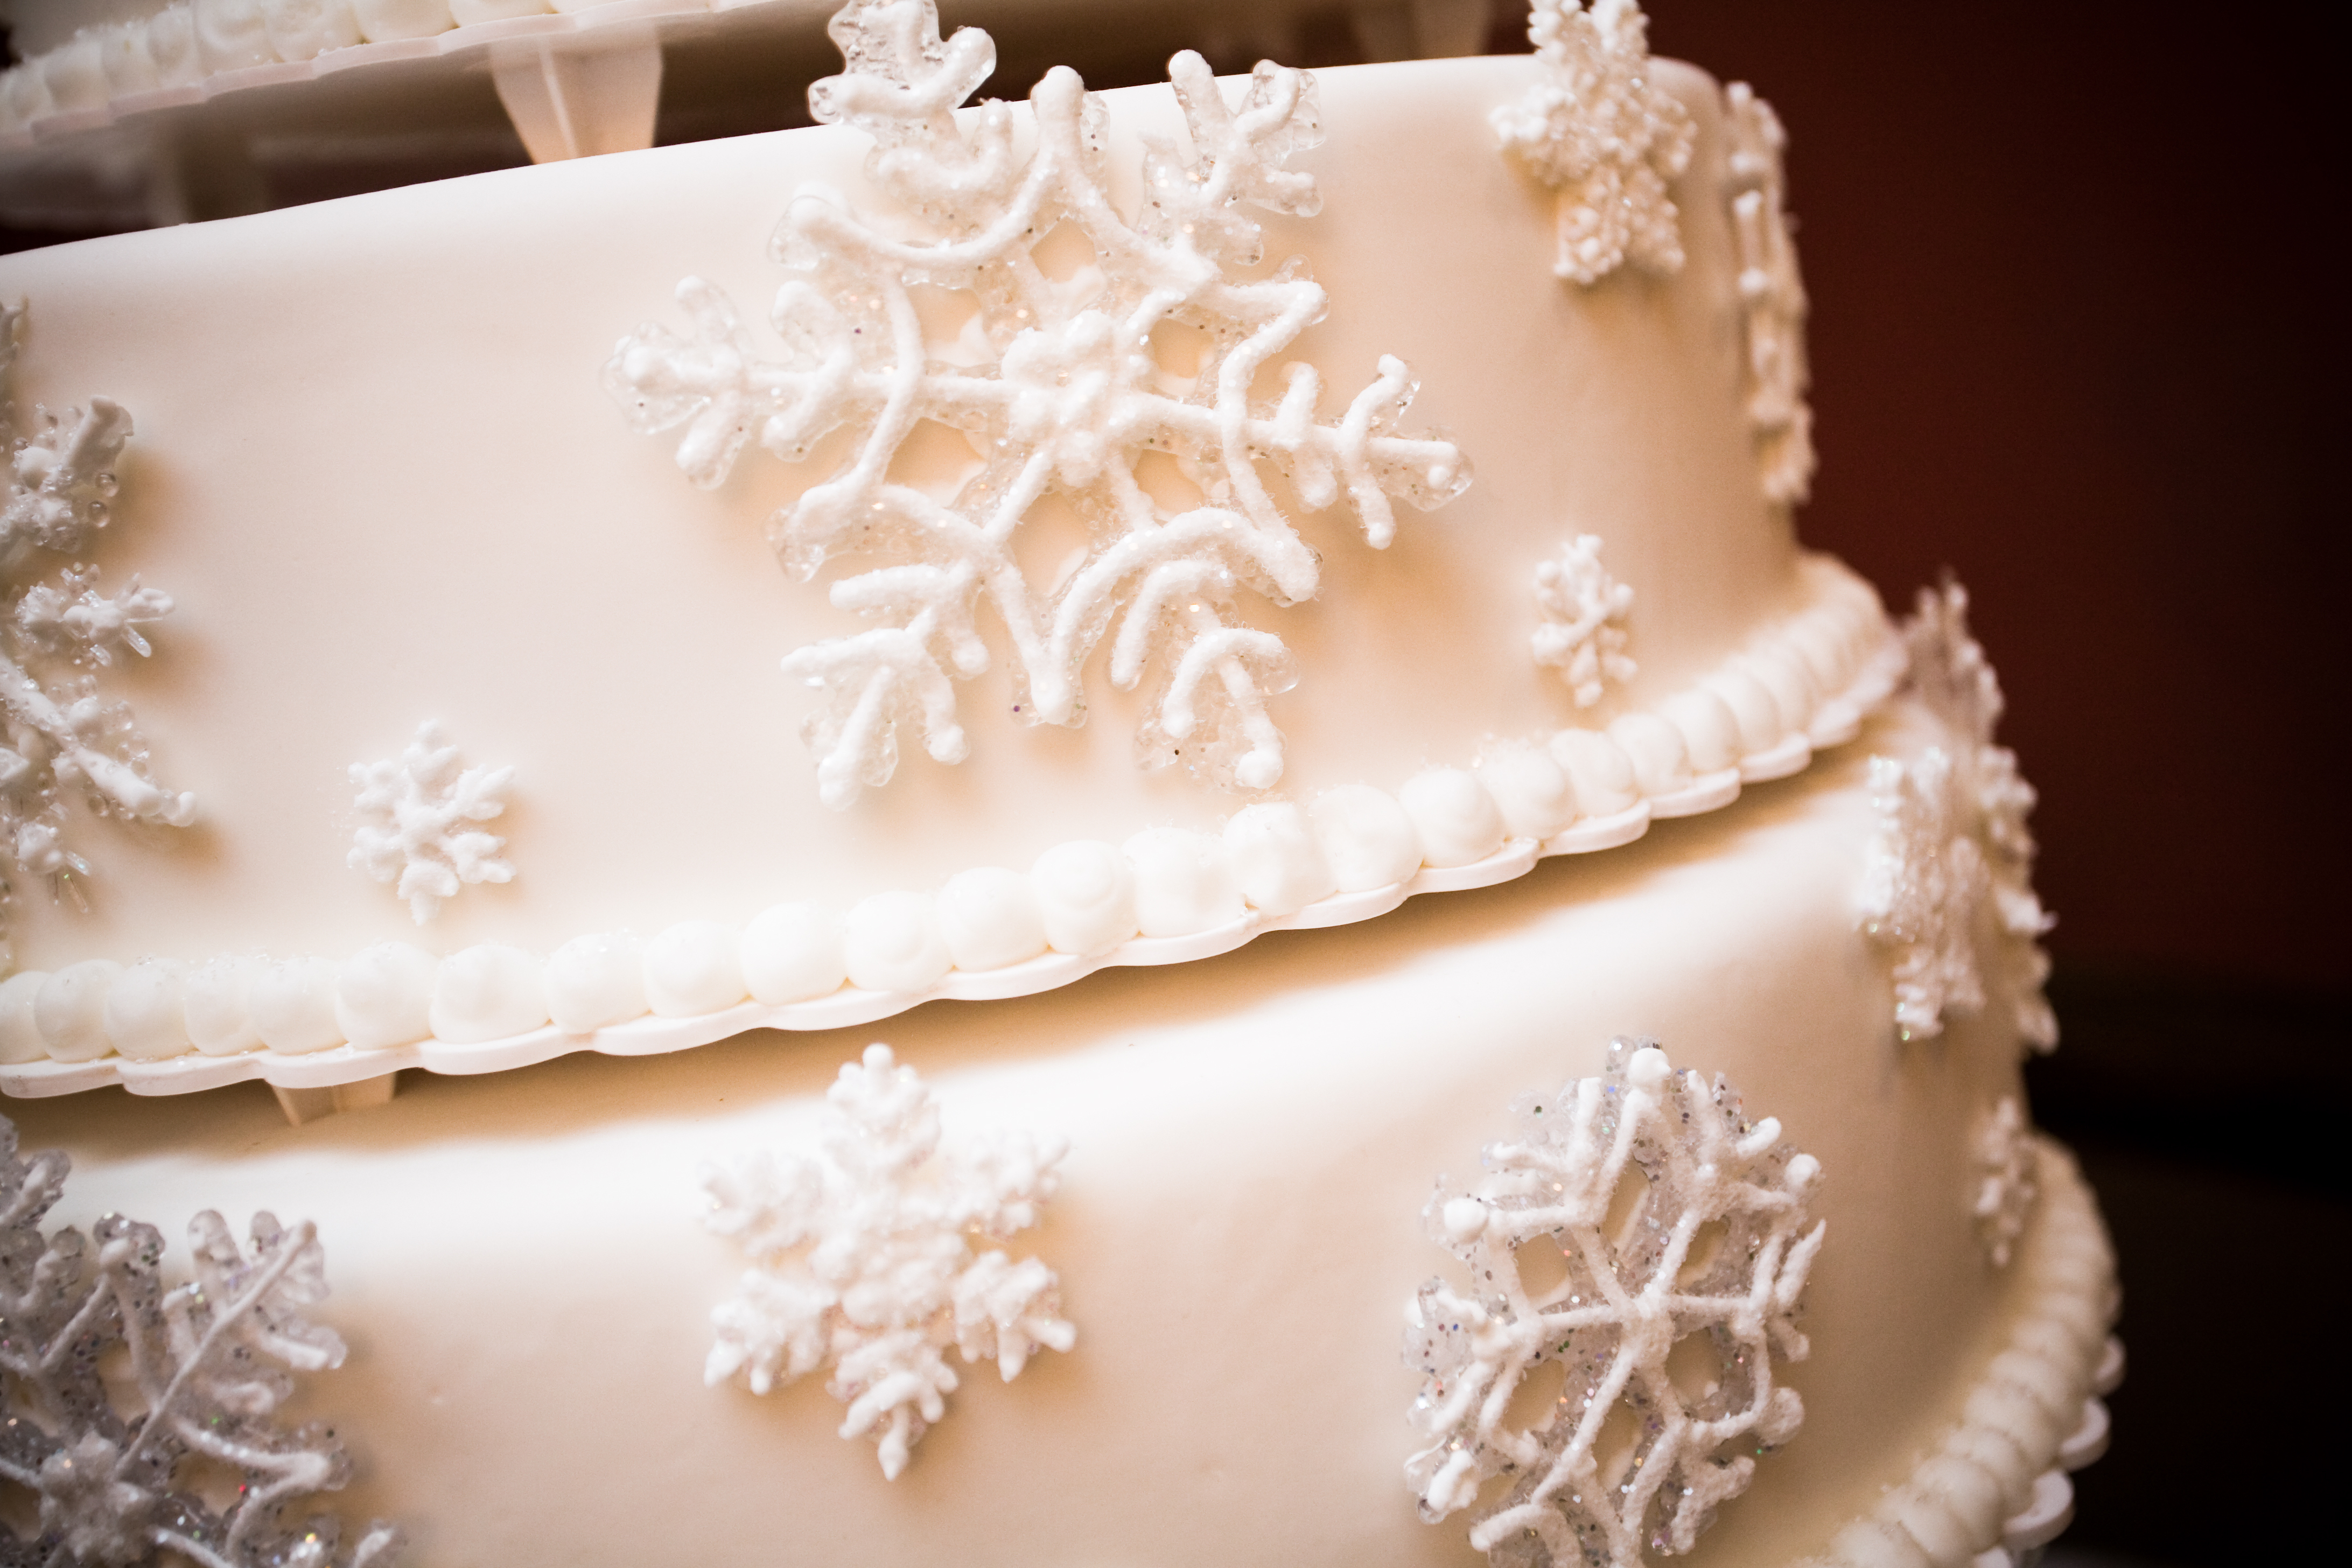 Reception, Flowers & Decor, Cakes, cake, Winter, Wedding, Snowflake, Wonderland